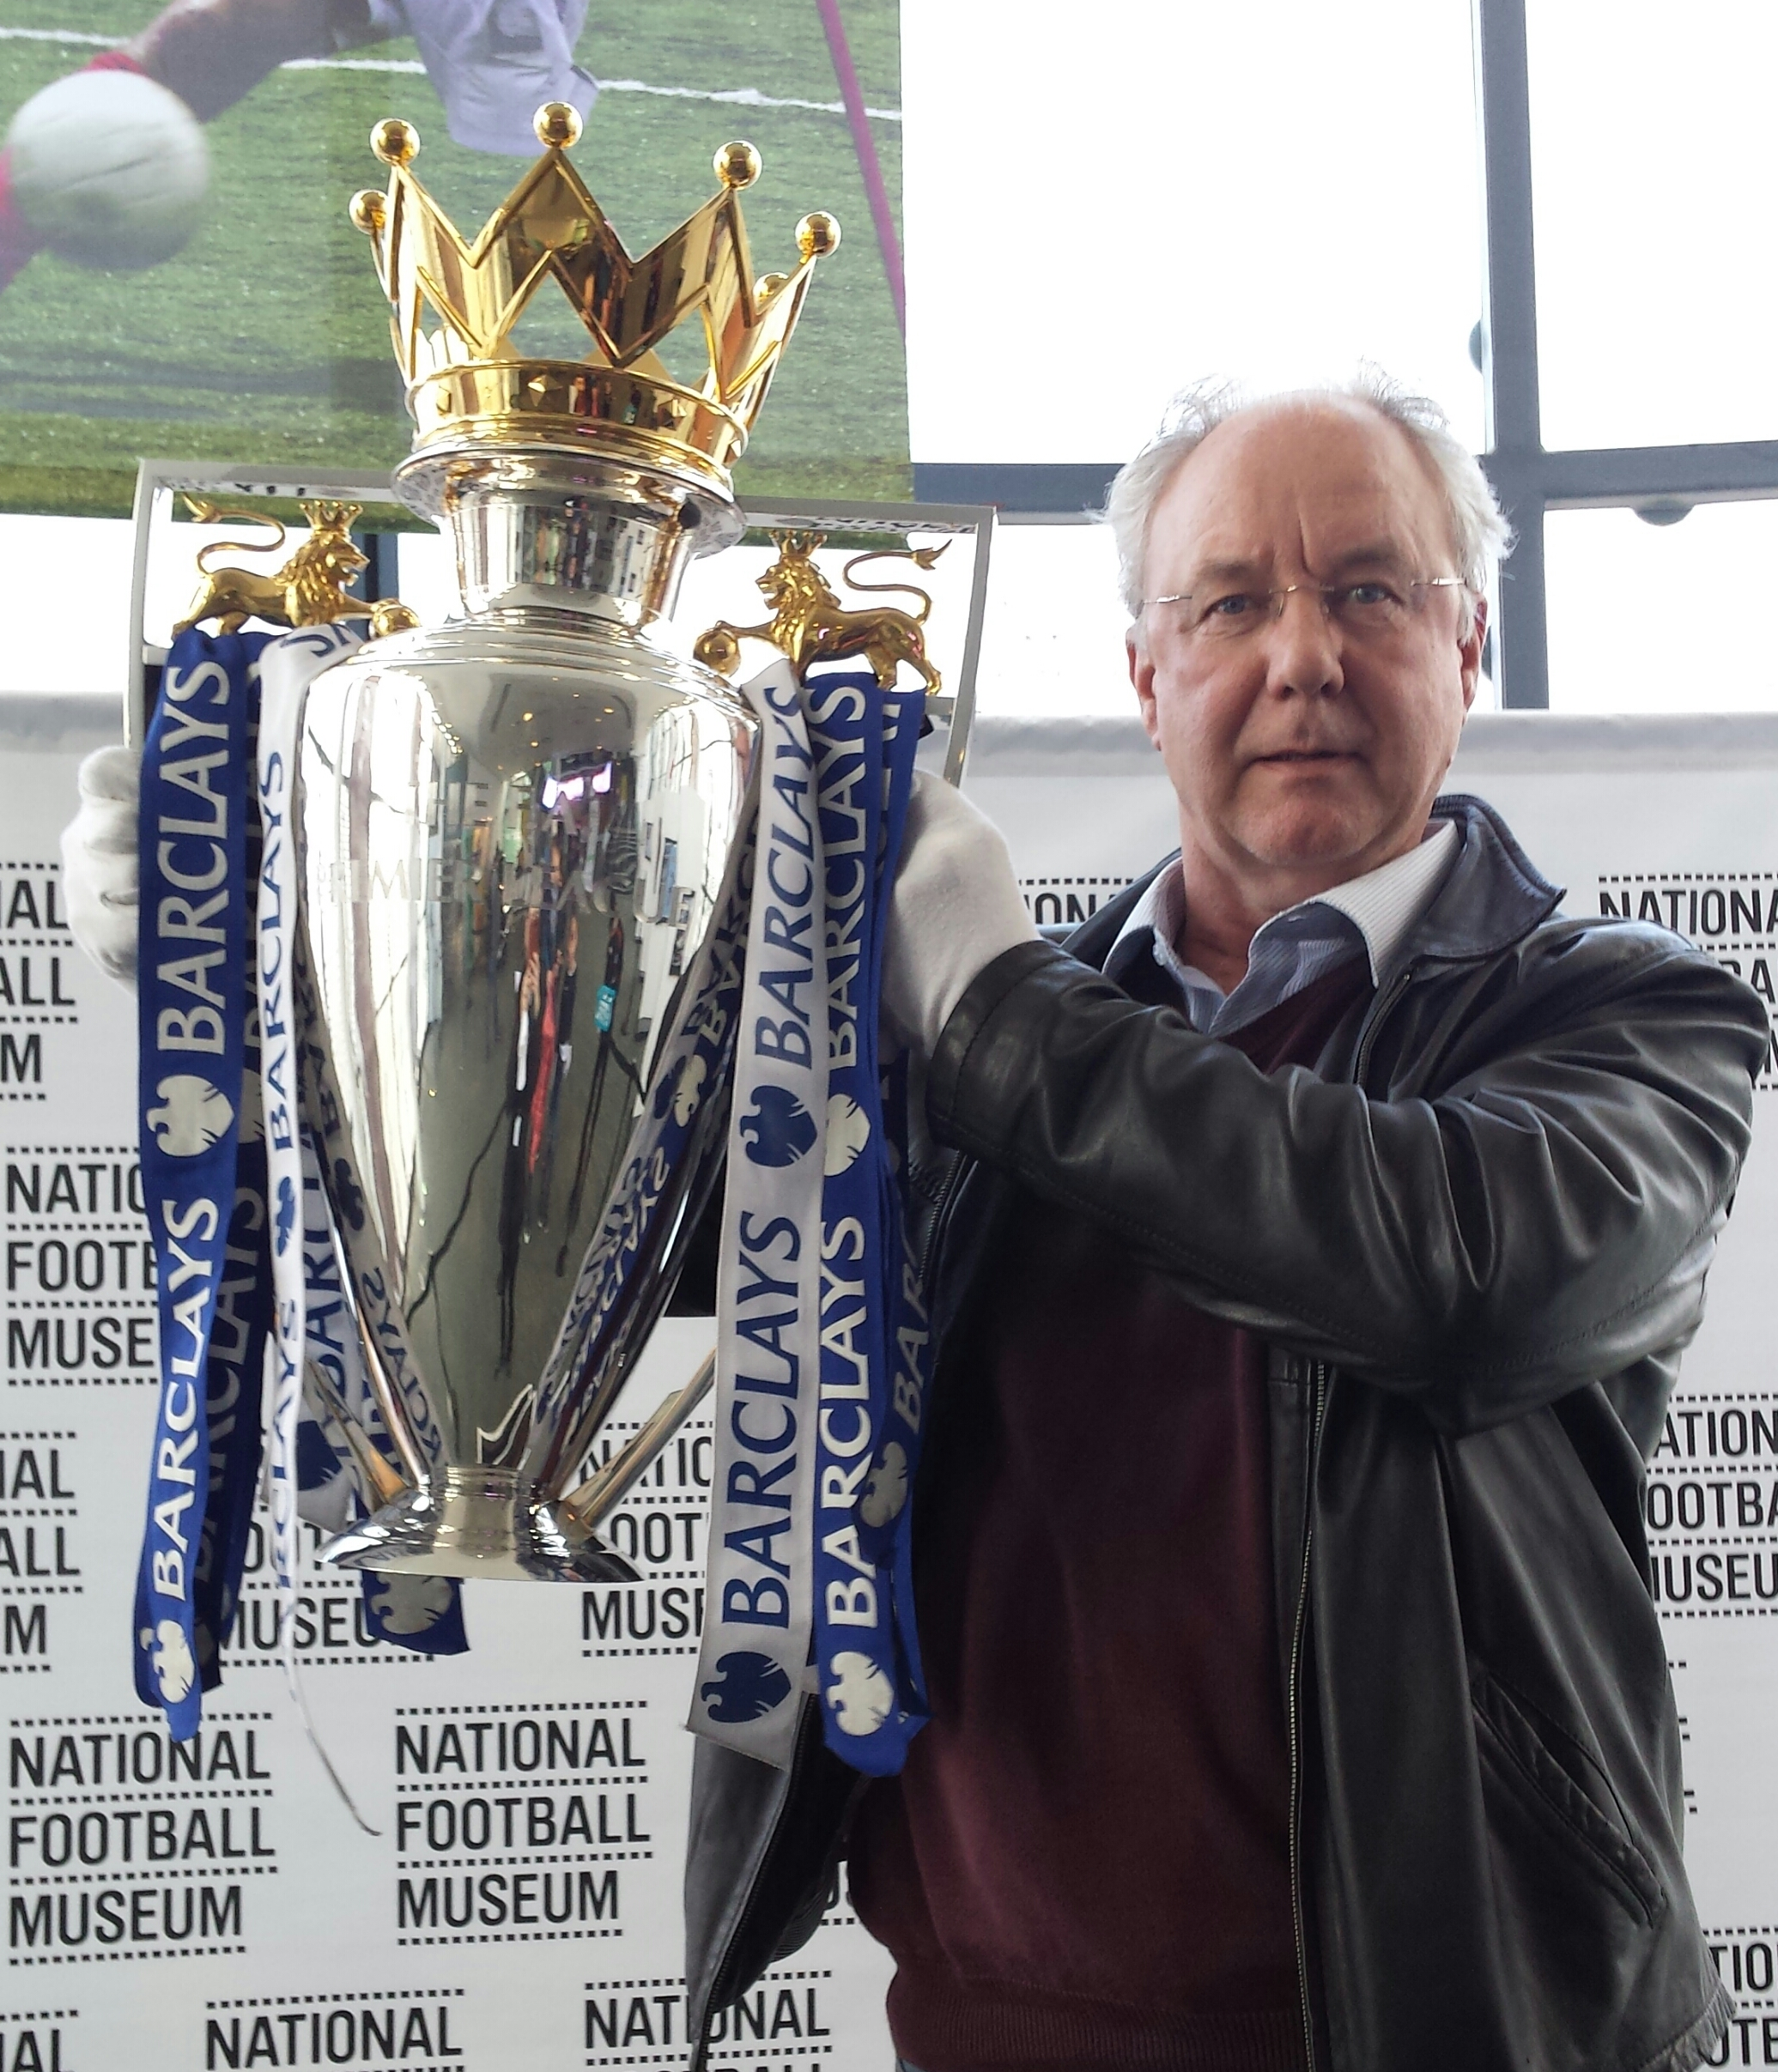 Me and the Premier league trophy